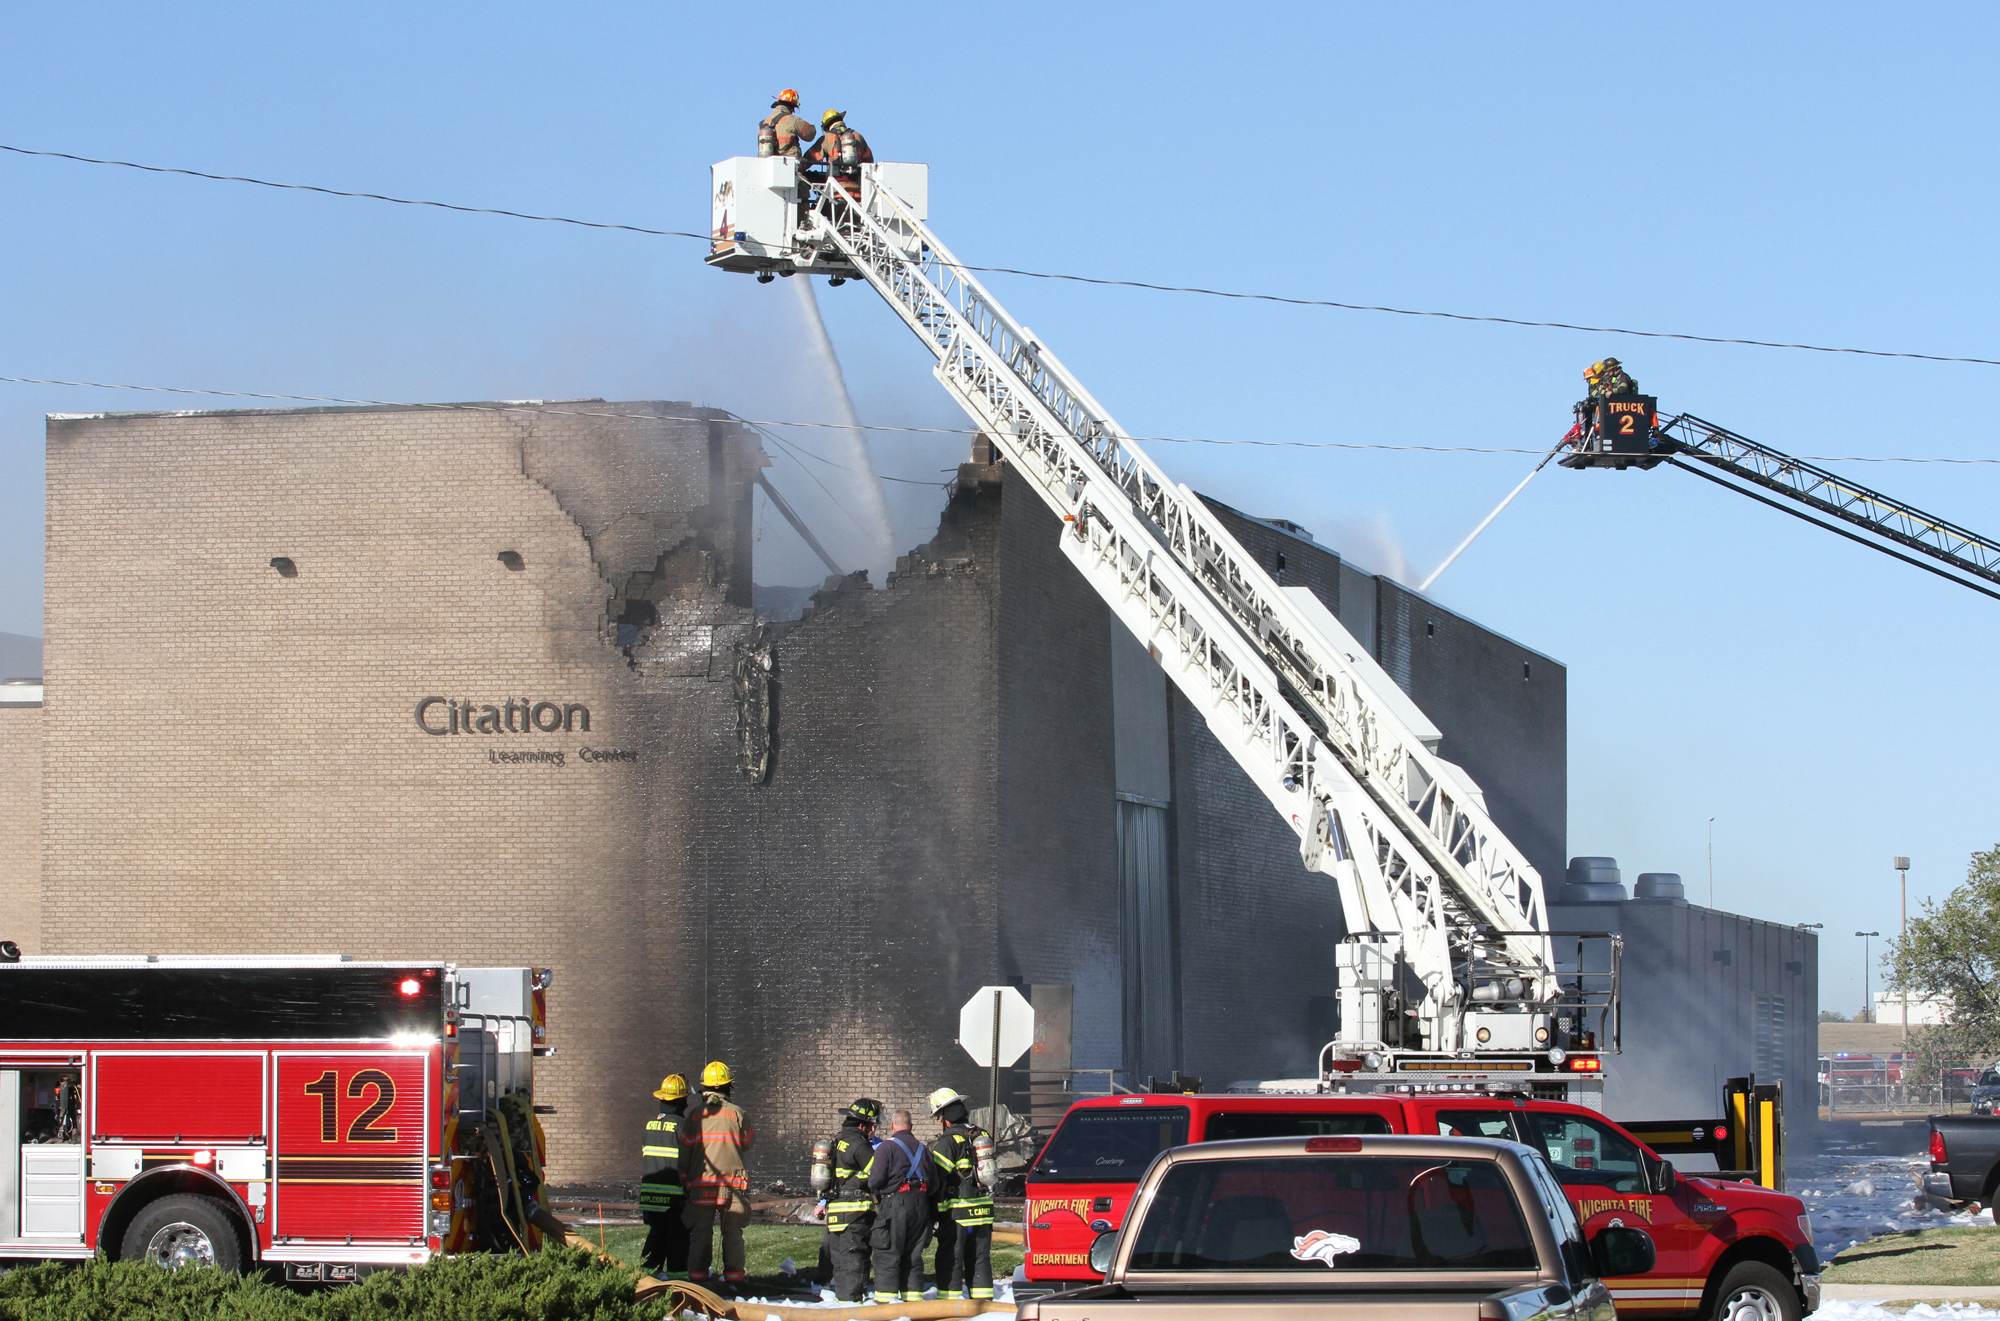 Firefighters try to put out a fire at Mid-Continent Airport in Wichita, Kan. on Oct. 30, 2014 shortly after a small plane crashed into the building killing several people including the pilot.